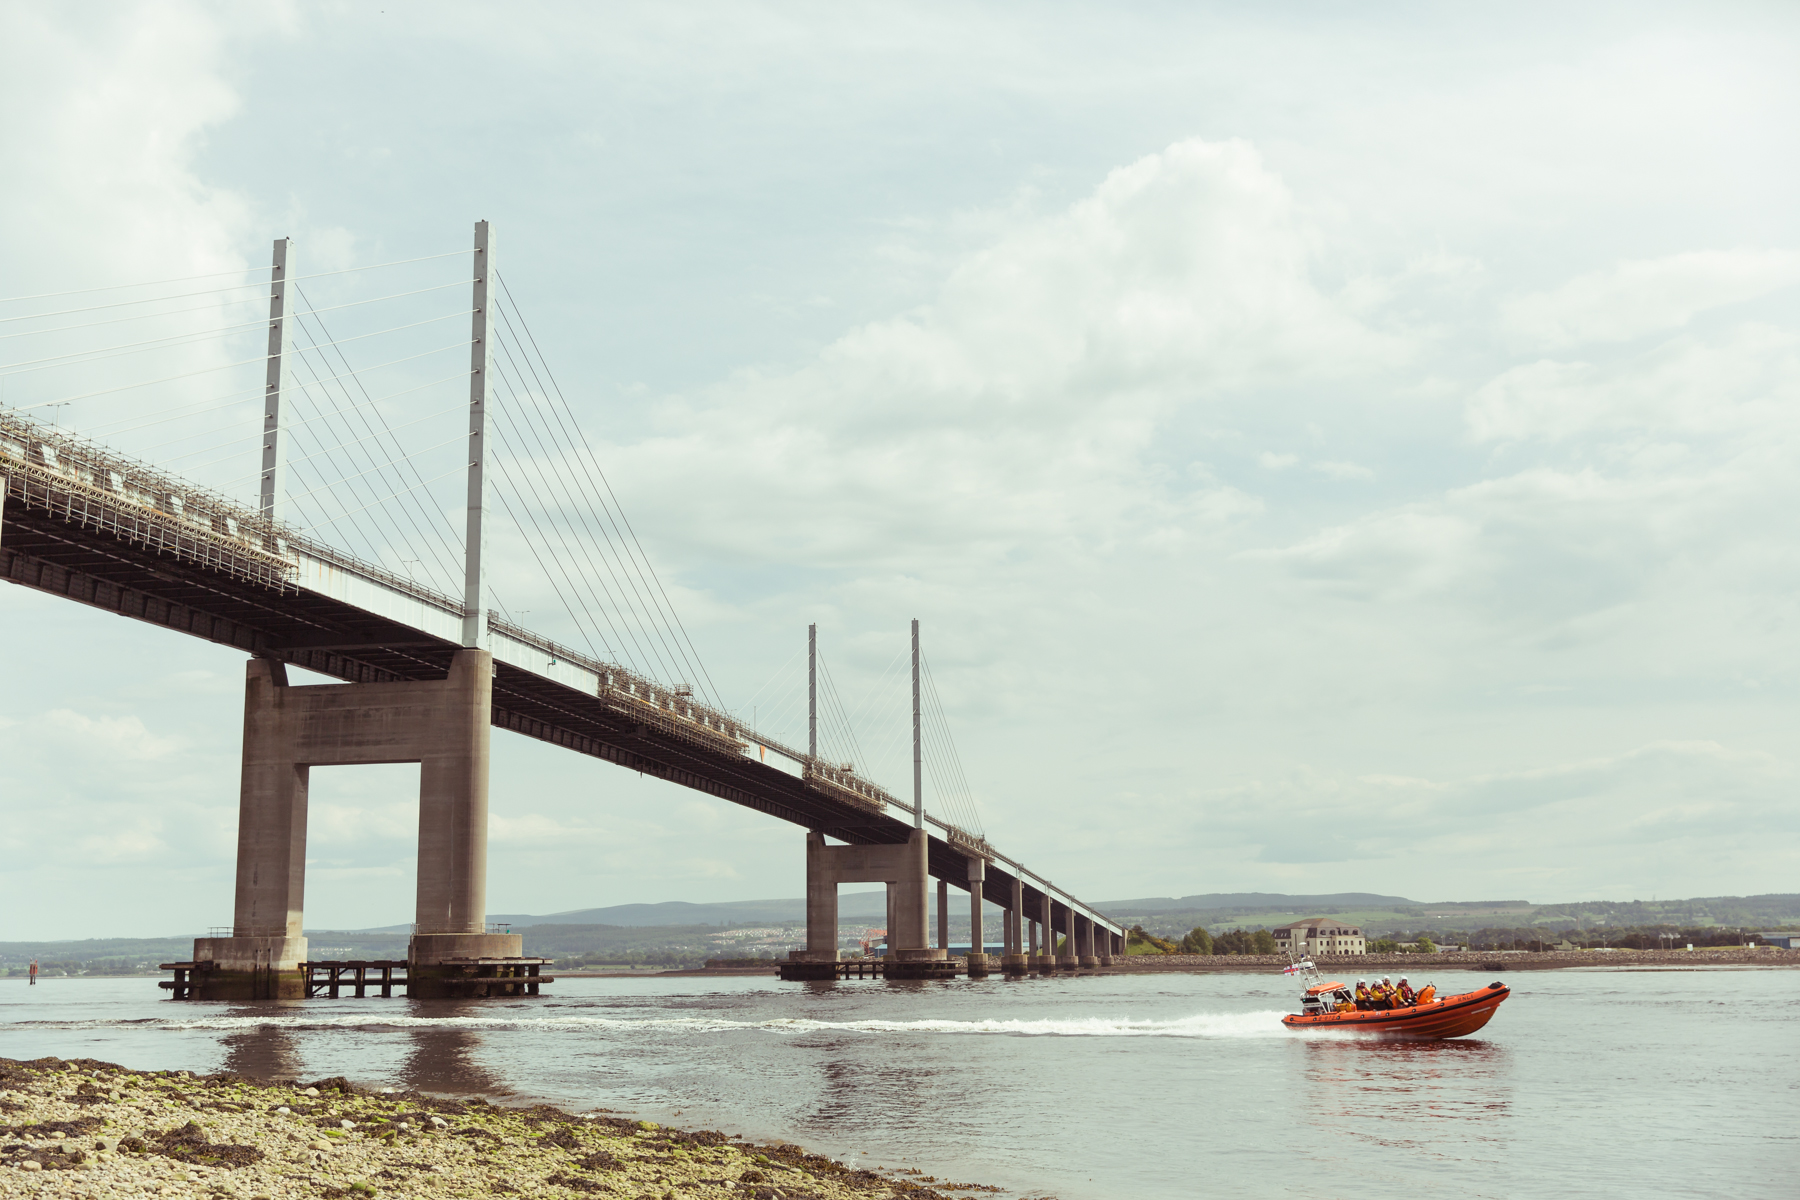 Kessock RNLI mjgholland Photography